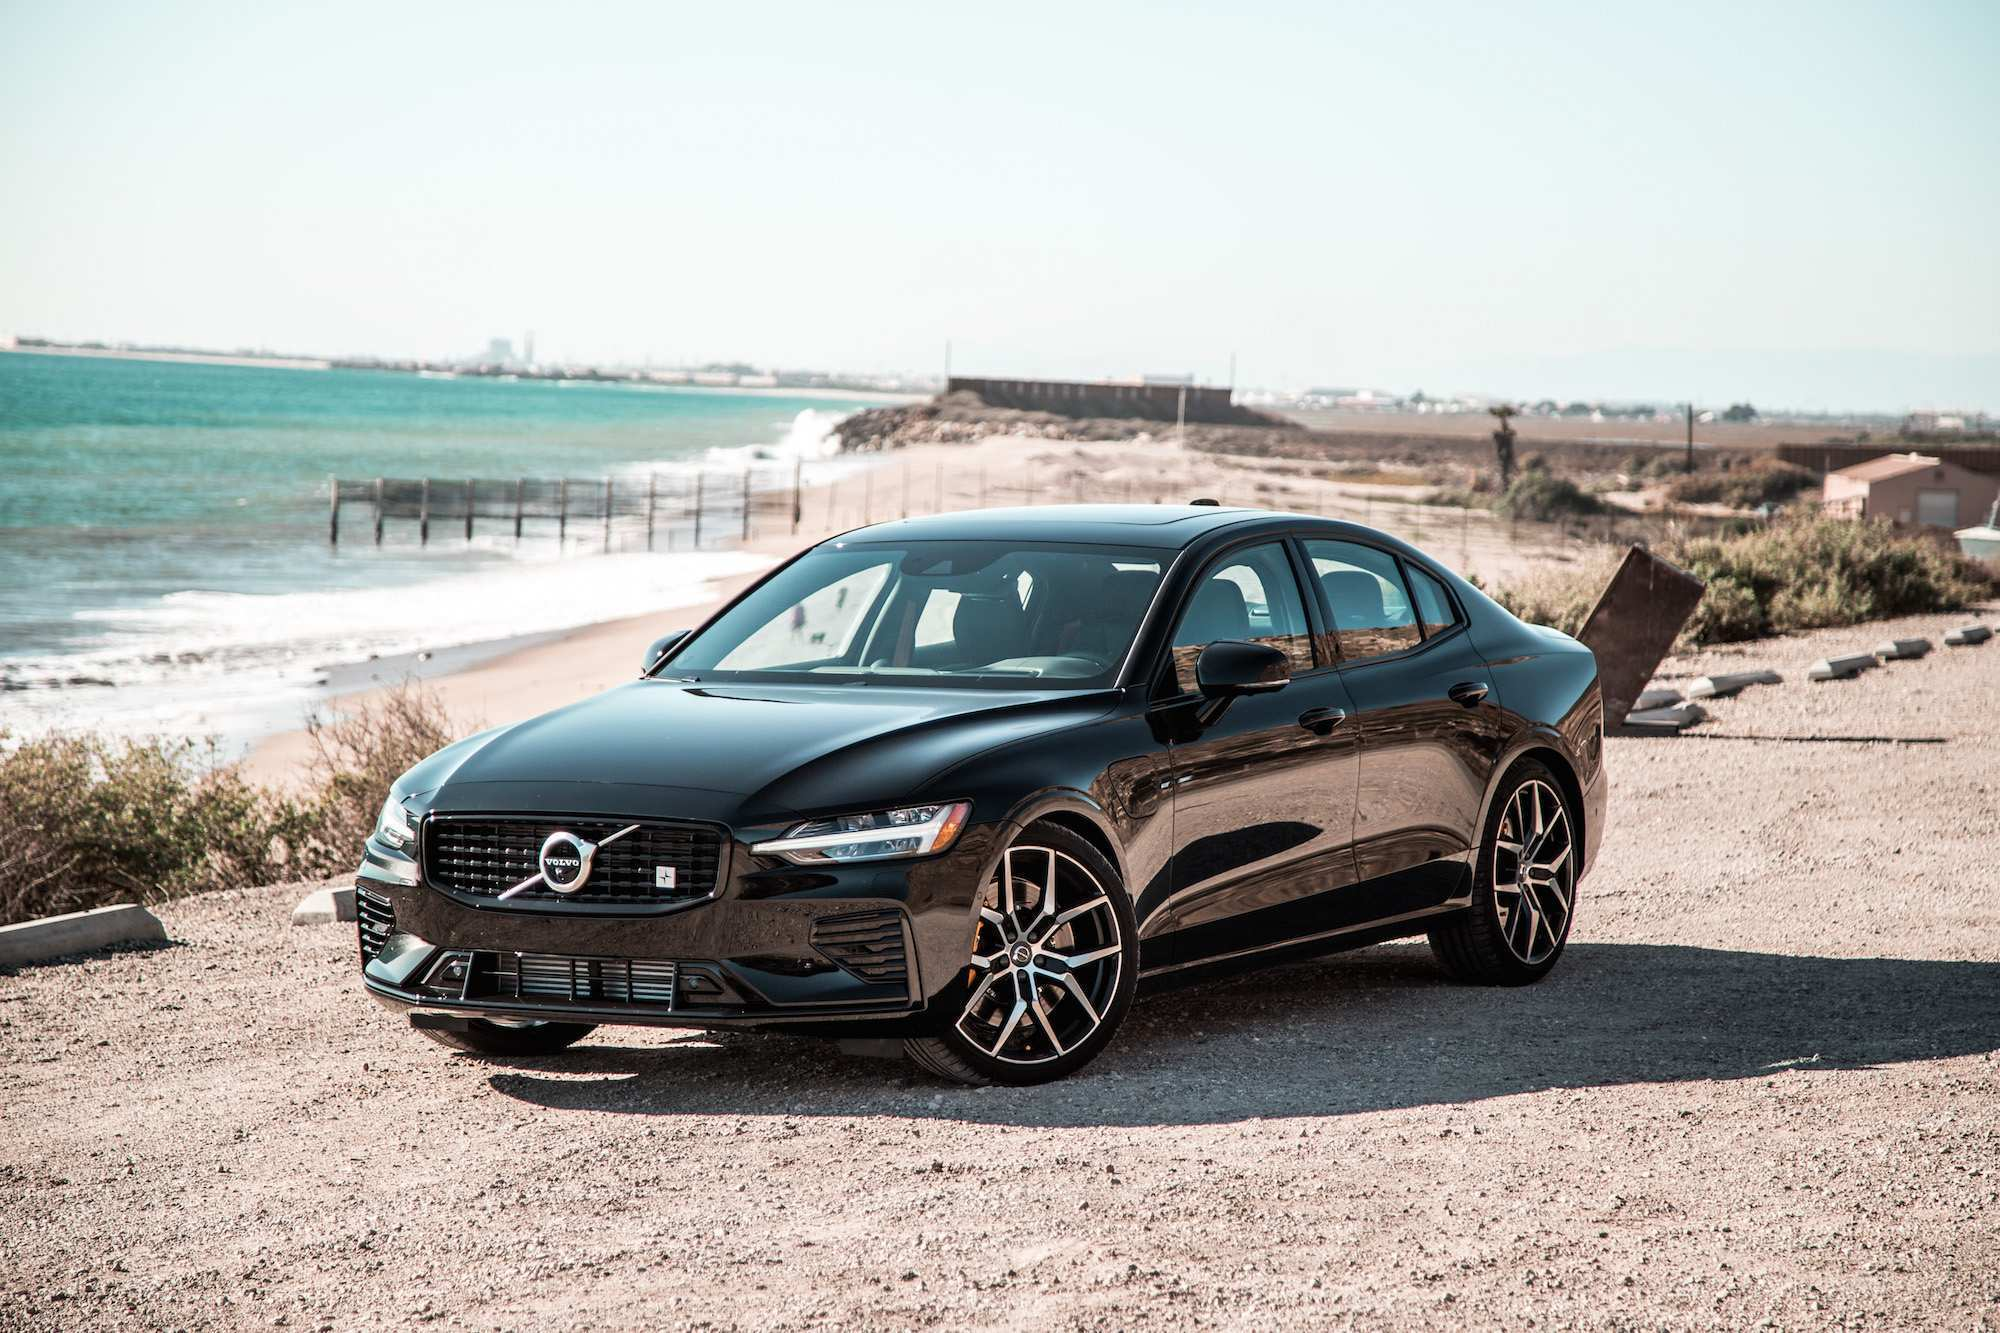 61 All New 2020 Volvo S60 Polestar Images with 2020 Volvo S60 Polestar